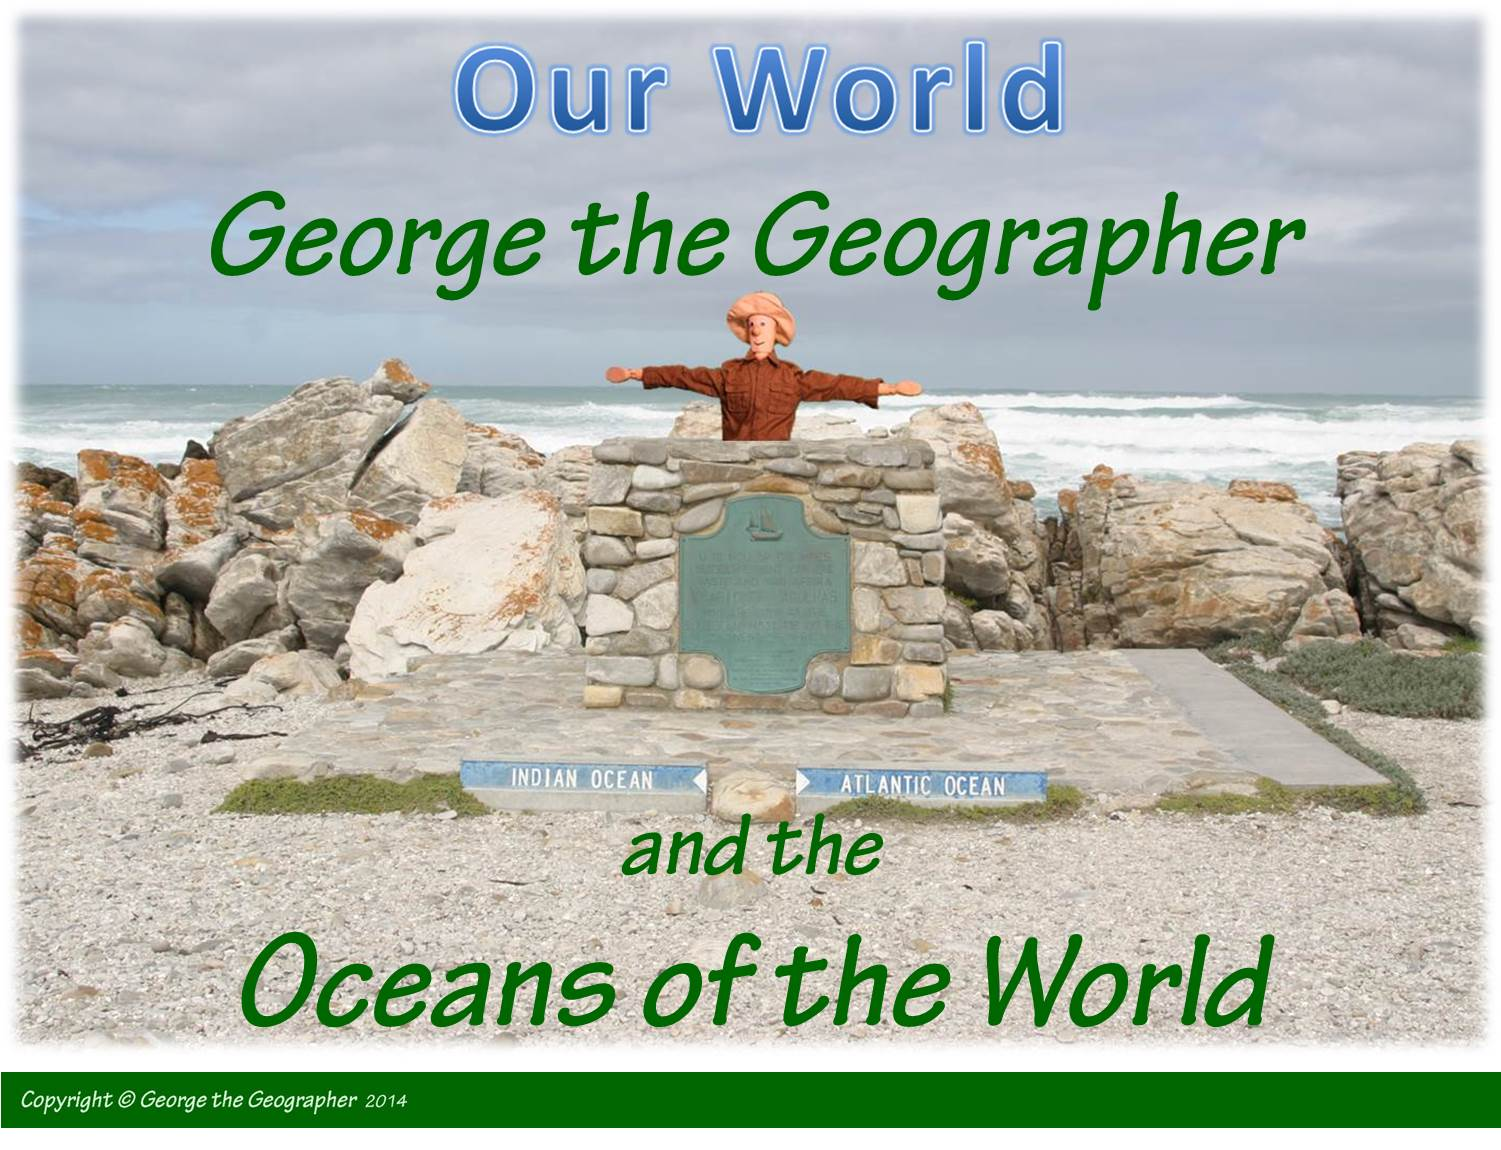 Download the Powerpoint about the Oceans of the world